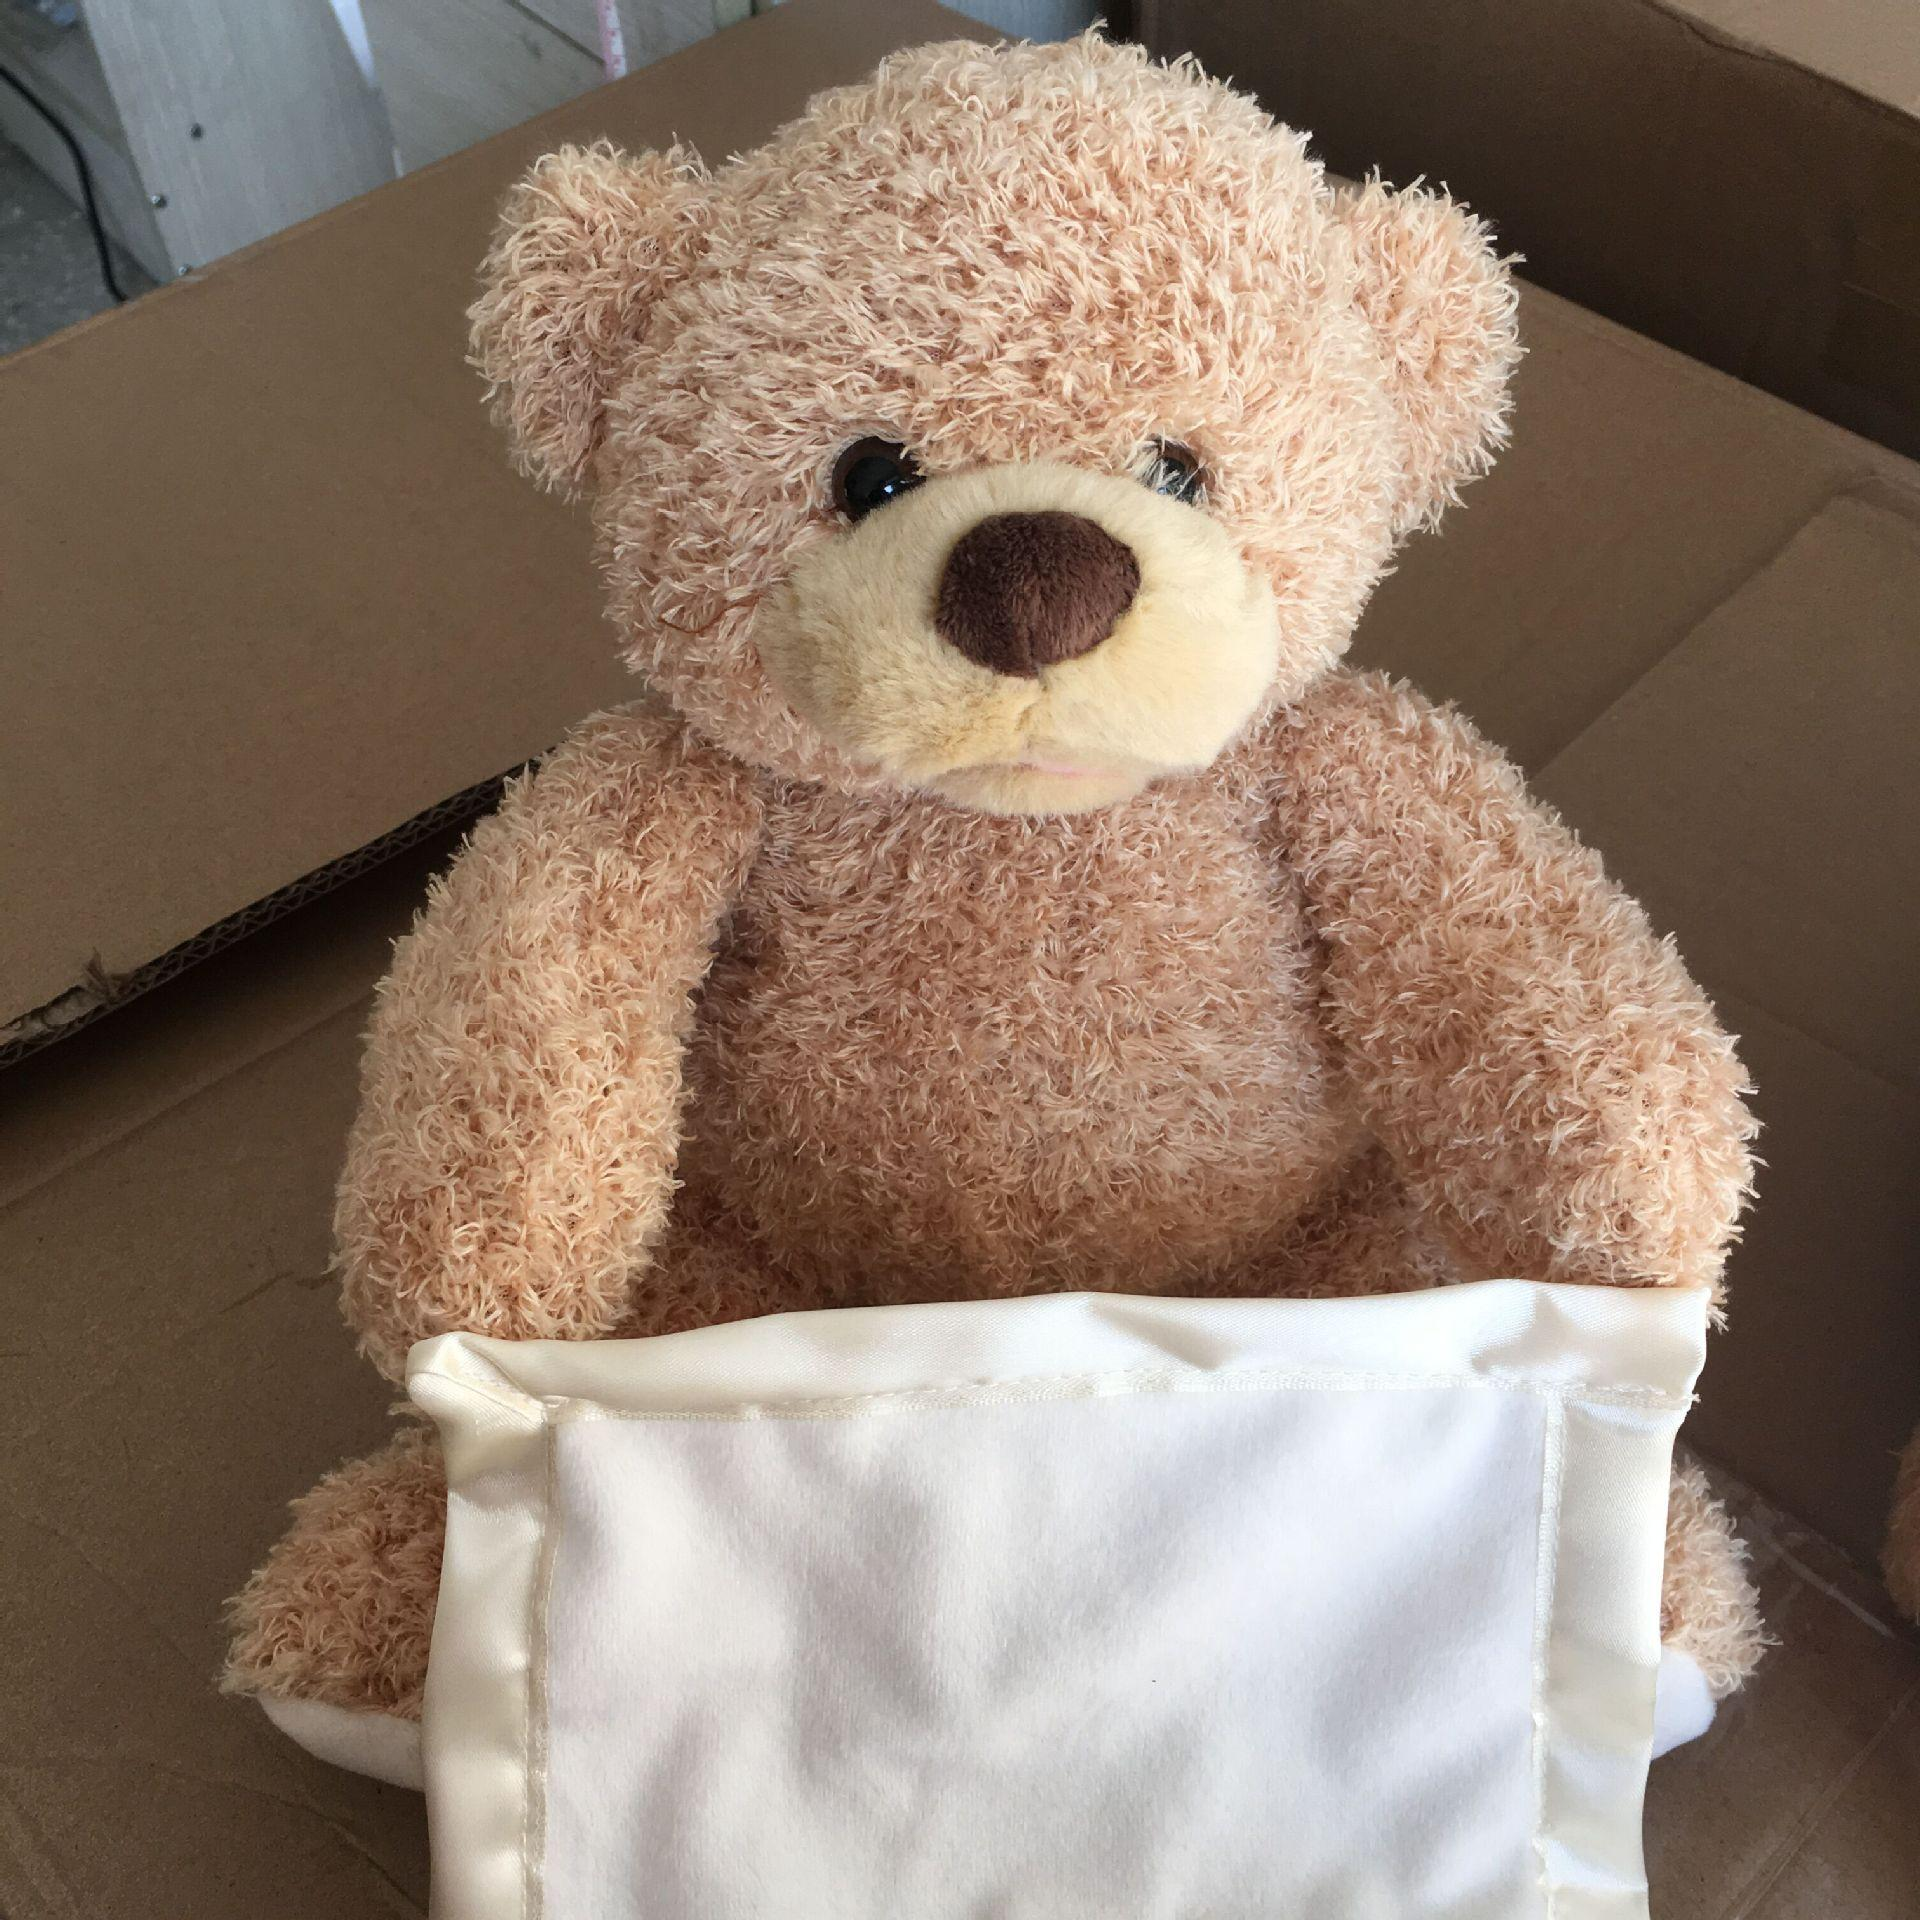 Dazzling Whichamazon Peek A Boo Bears Can Talk From 2018 Manufacturer Blew Up A Teddy Bear Electric Stuffed Toy In 2018 Manufacturer Blew Up A Teddy Bear Electric Stuffed Toy baby Peek A Boo Bear